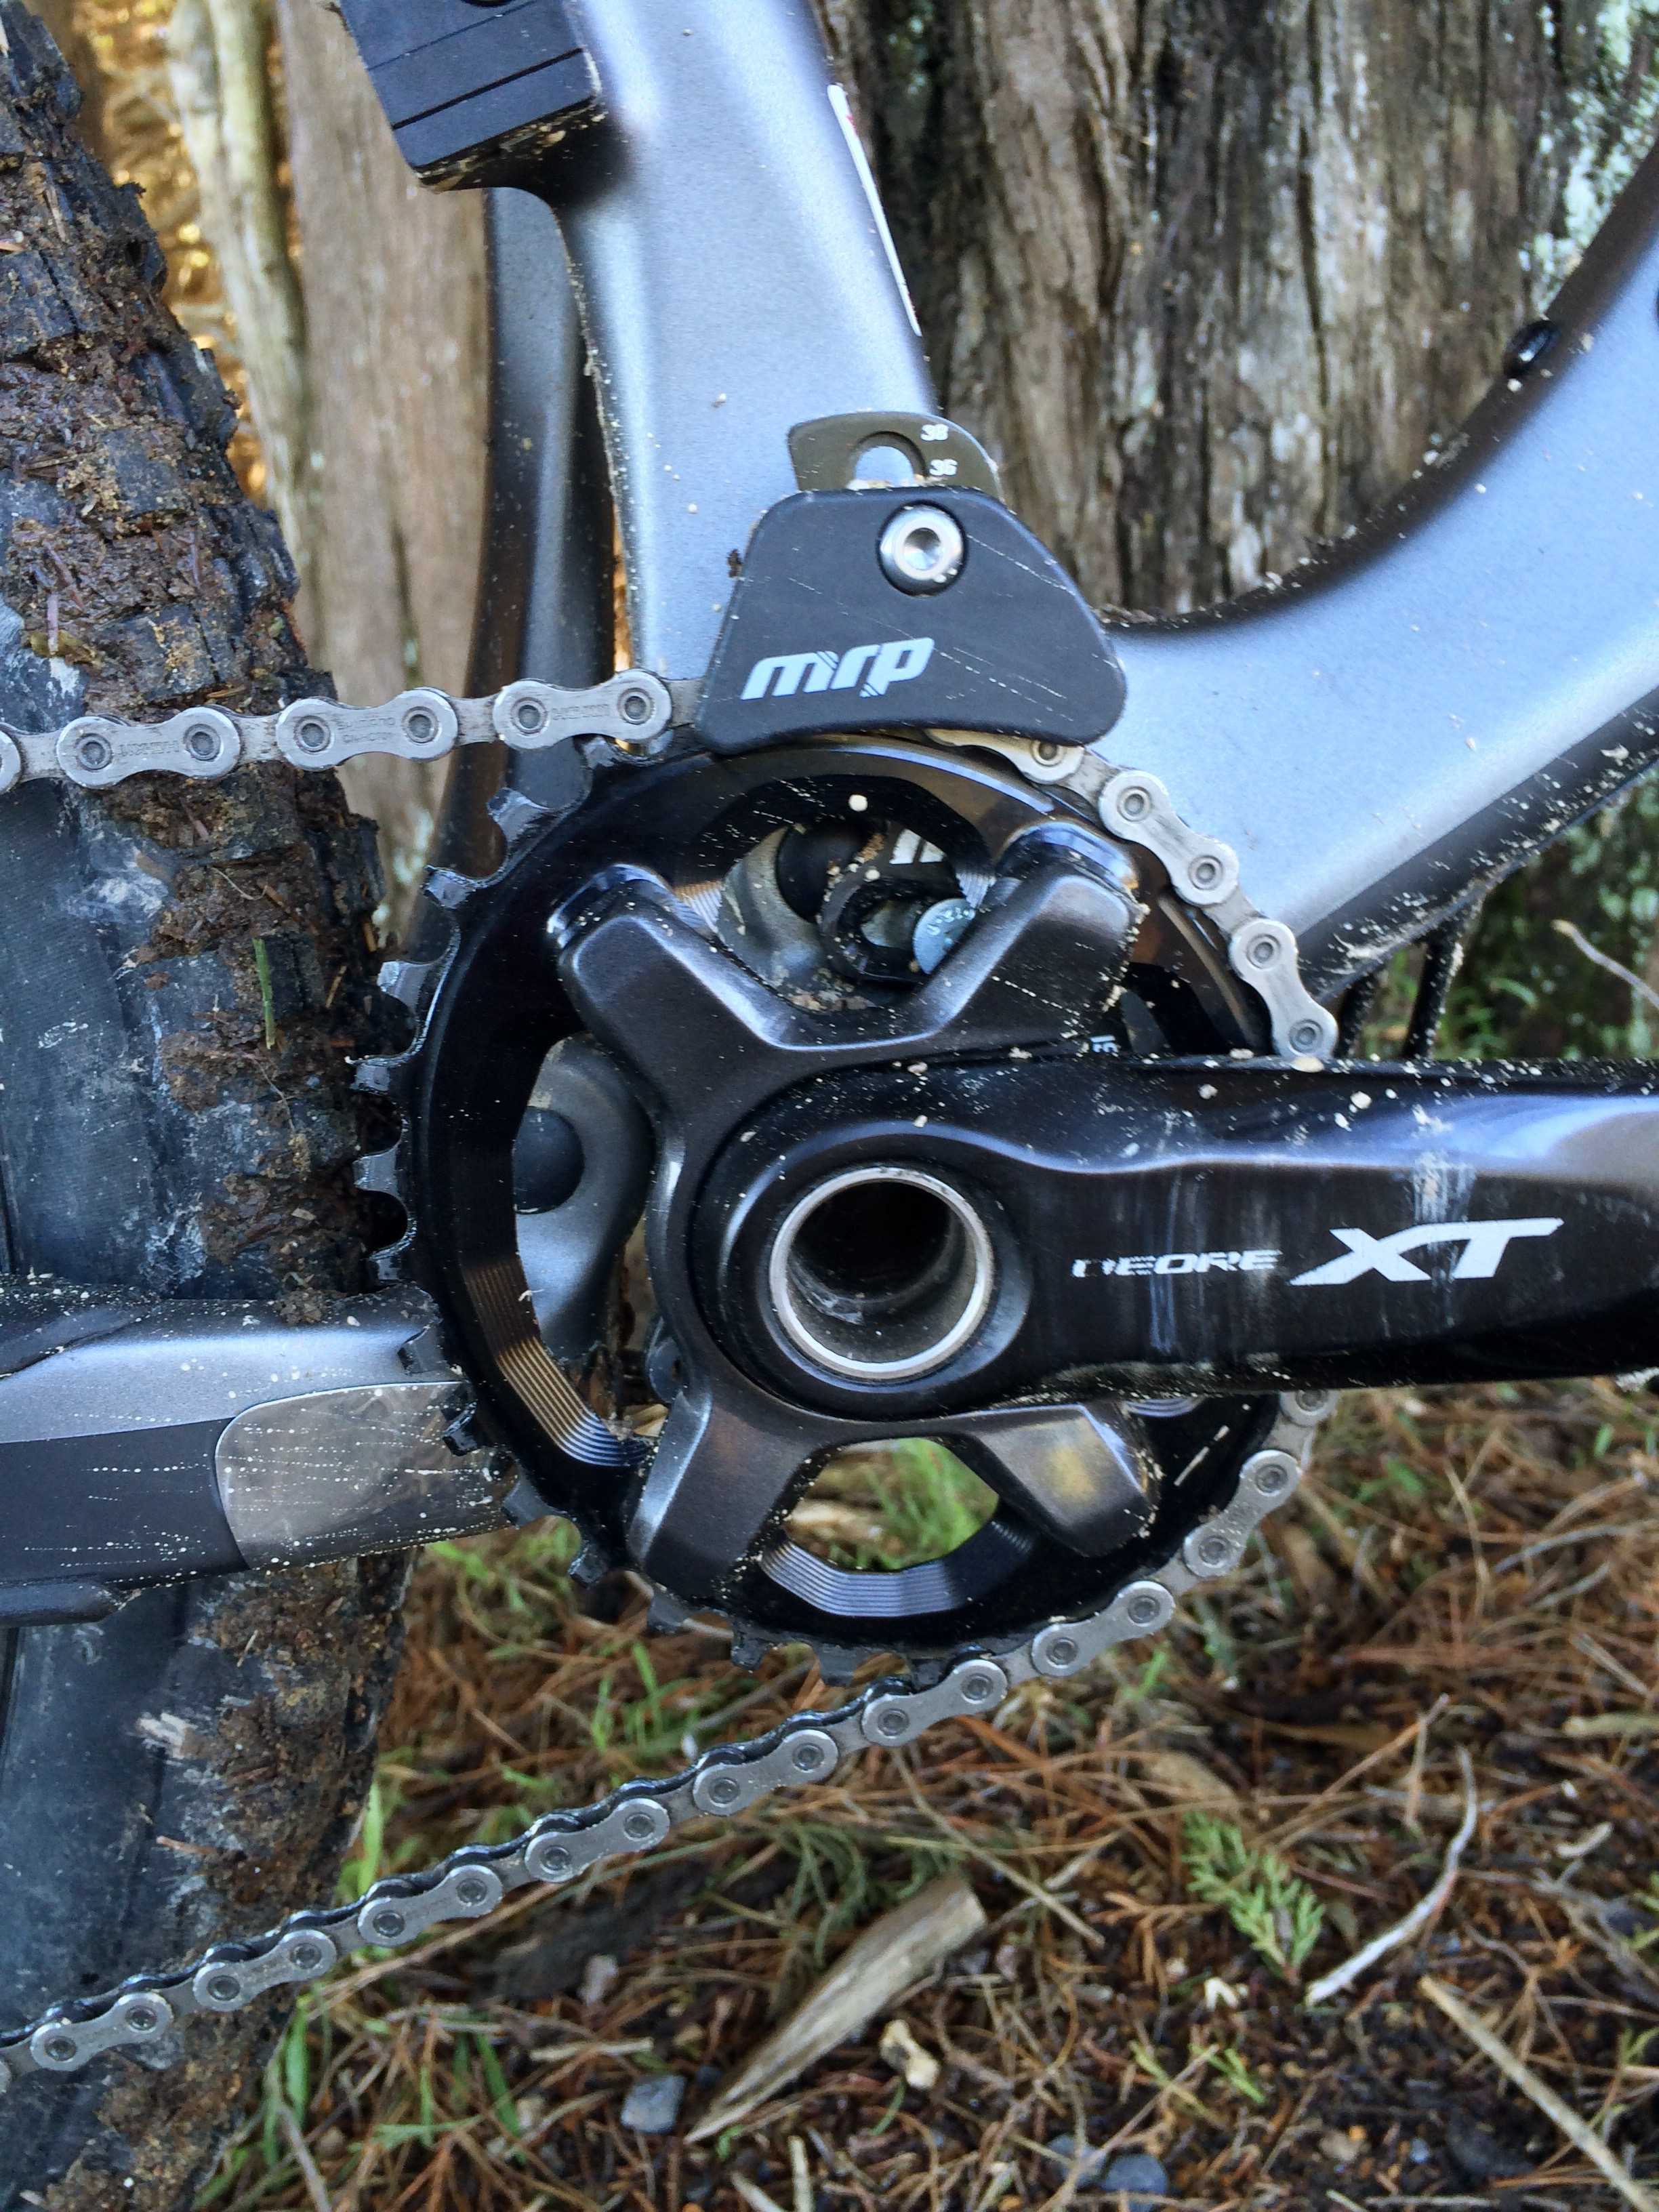 """You didn't believe me about the 16.5"""" chain stays until you saw this pic huh? All tucked in tight. An oval ring from Absolute Black, one of Wideopens brands, along with Thomson, Chris King, Enve, Mrp, Stans, FSA and now Intense among others."""